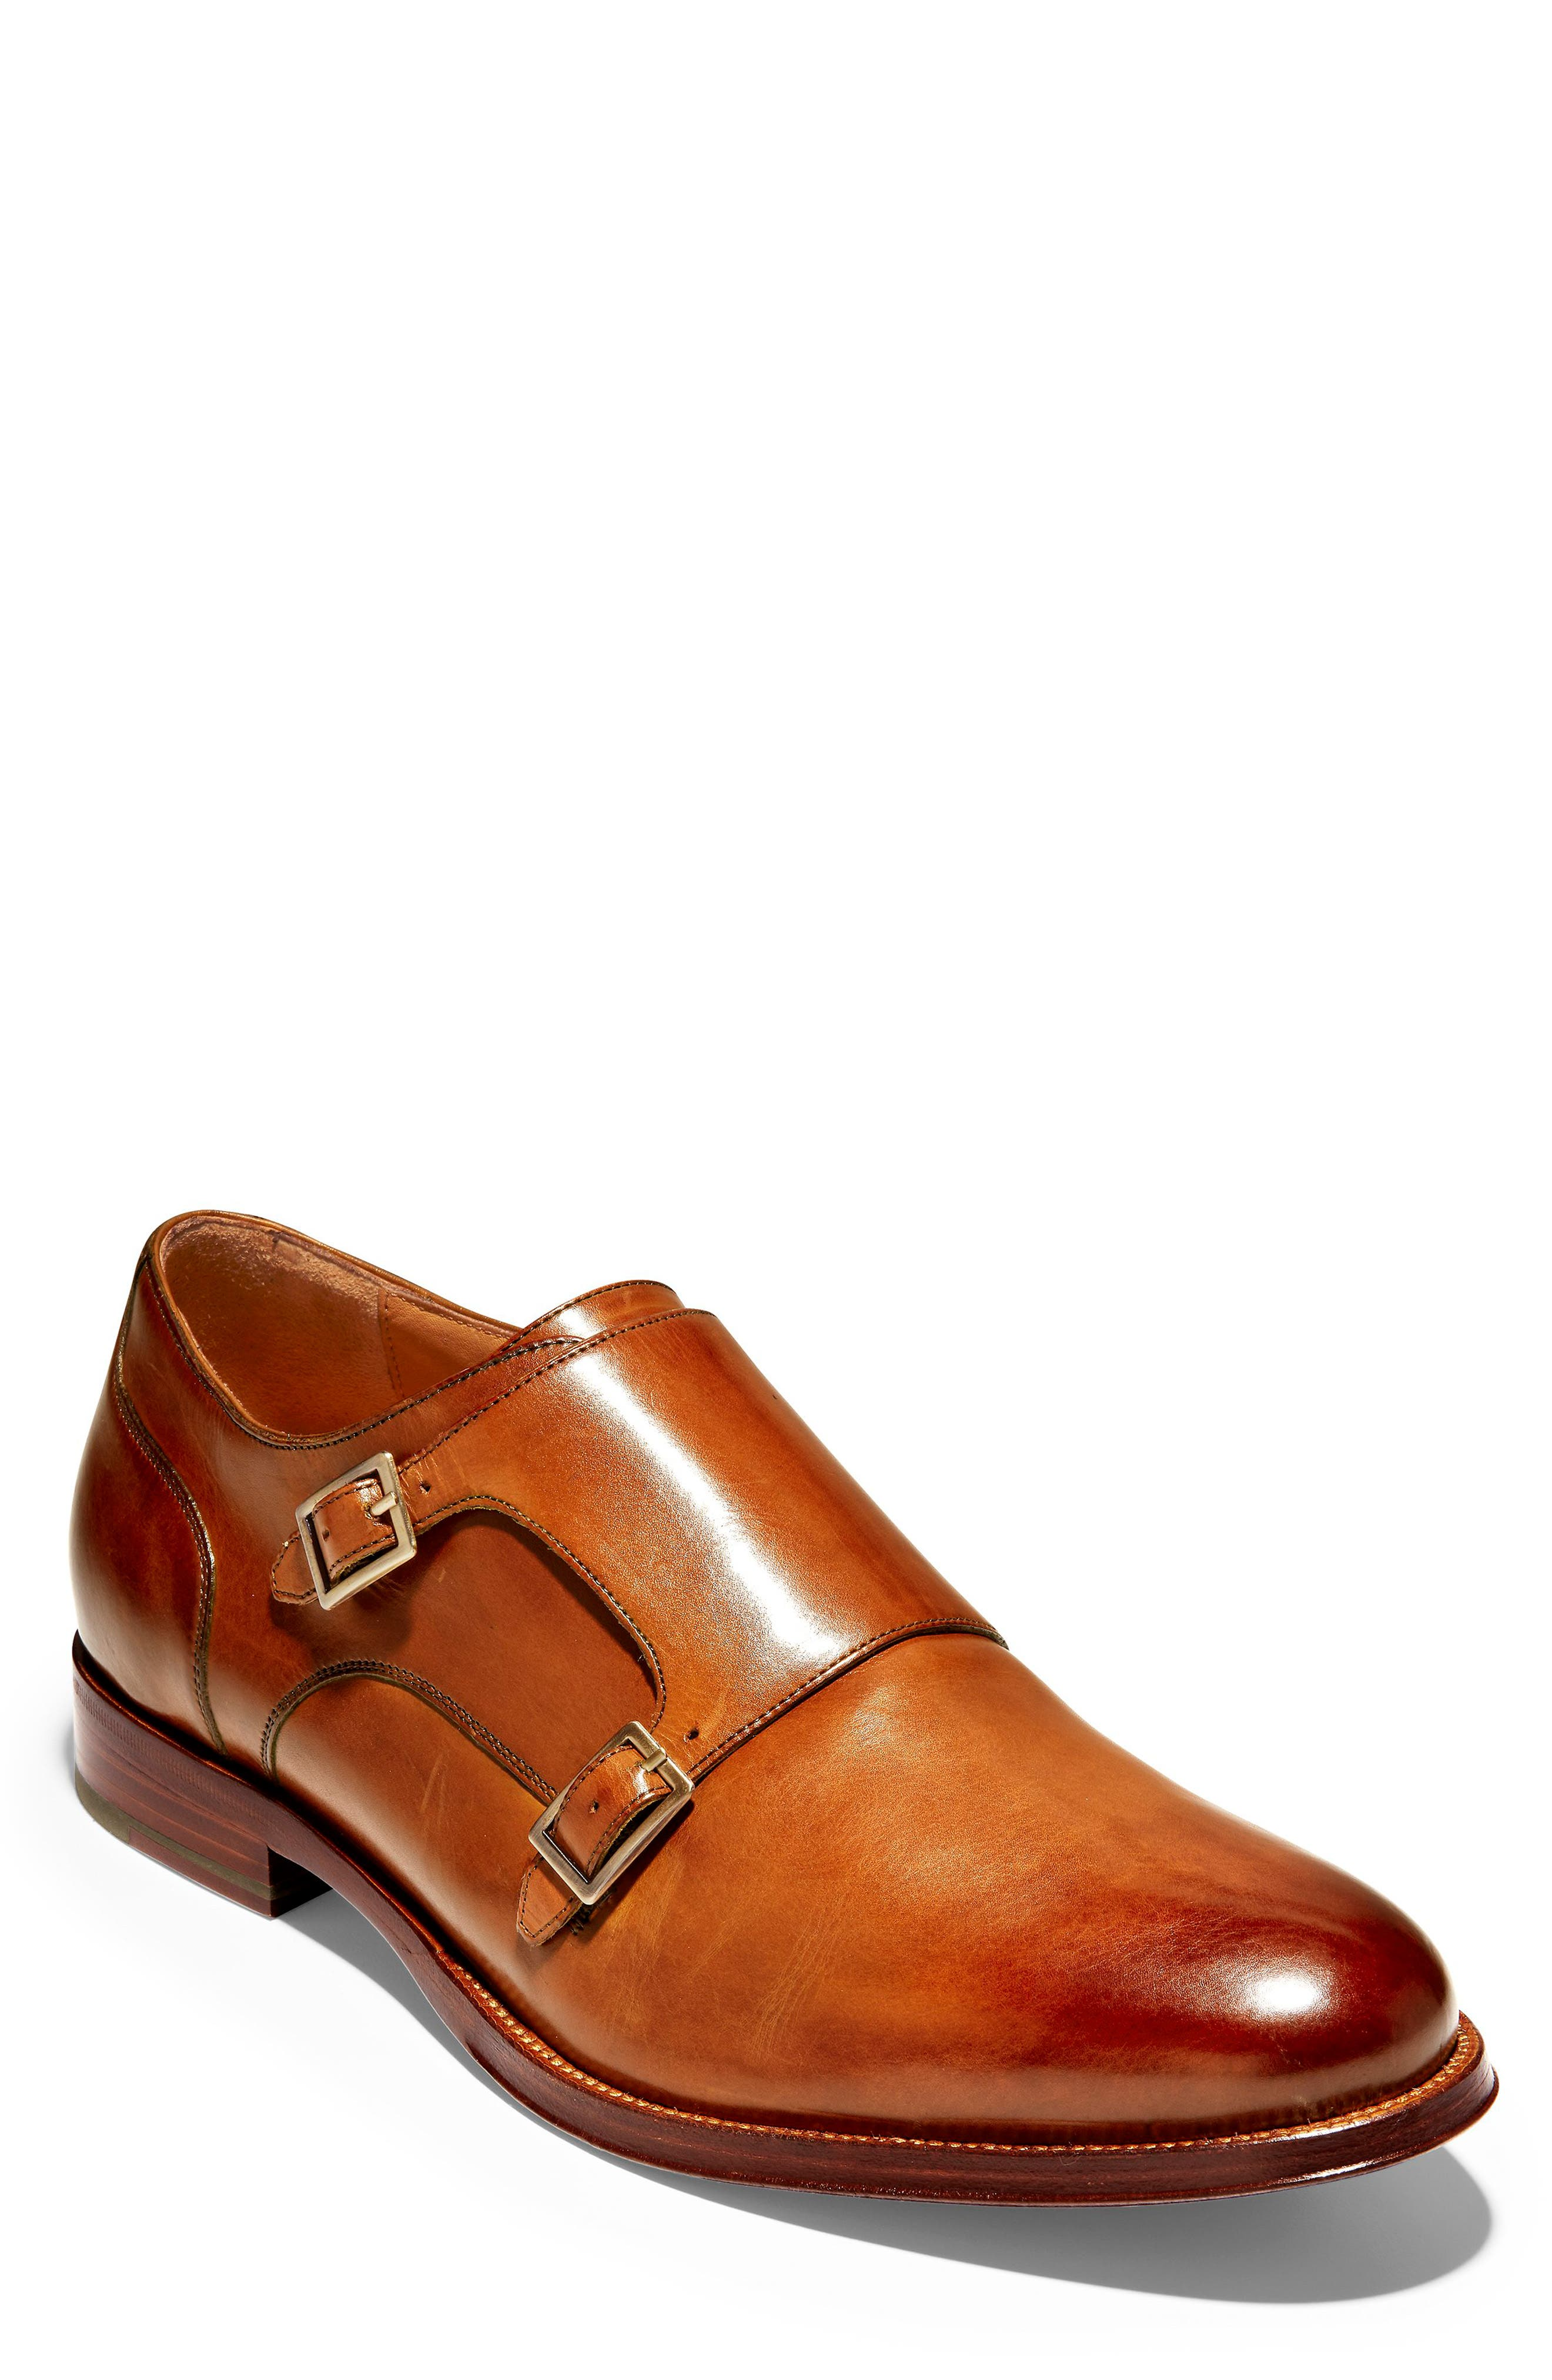 COLE HAAN American Classics Gramercy Double Strap Monk Shoe, Main, color, BRITISH TAN LEATHER